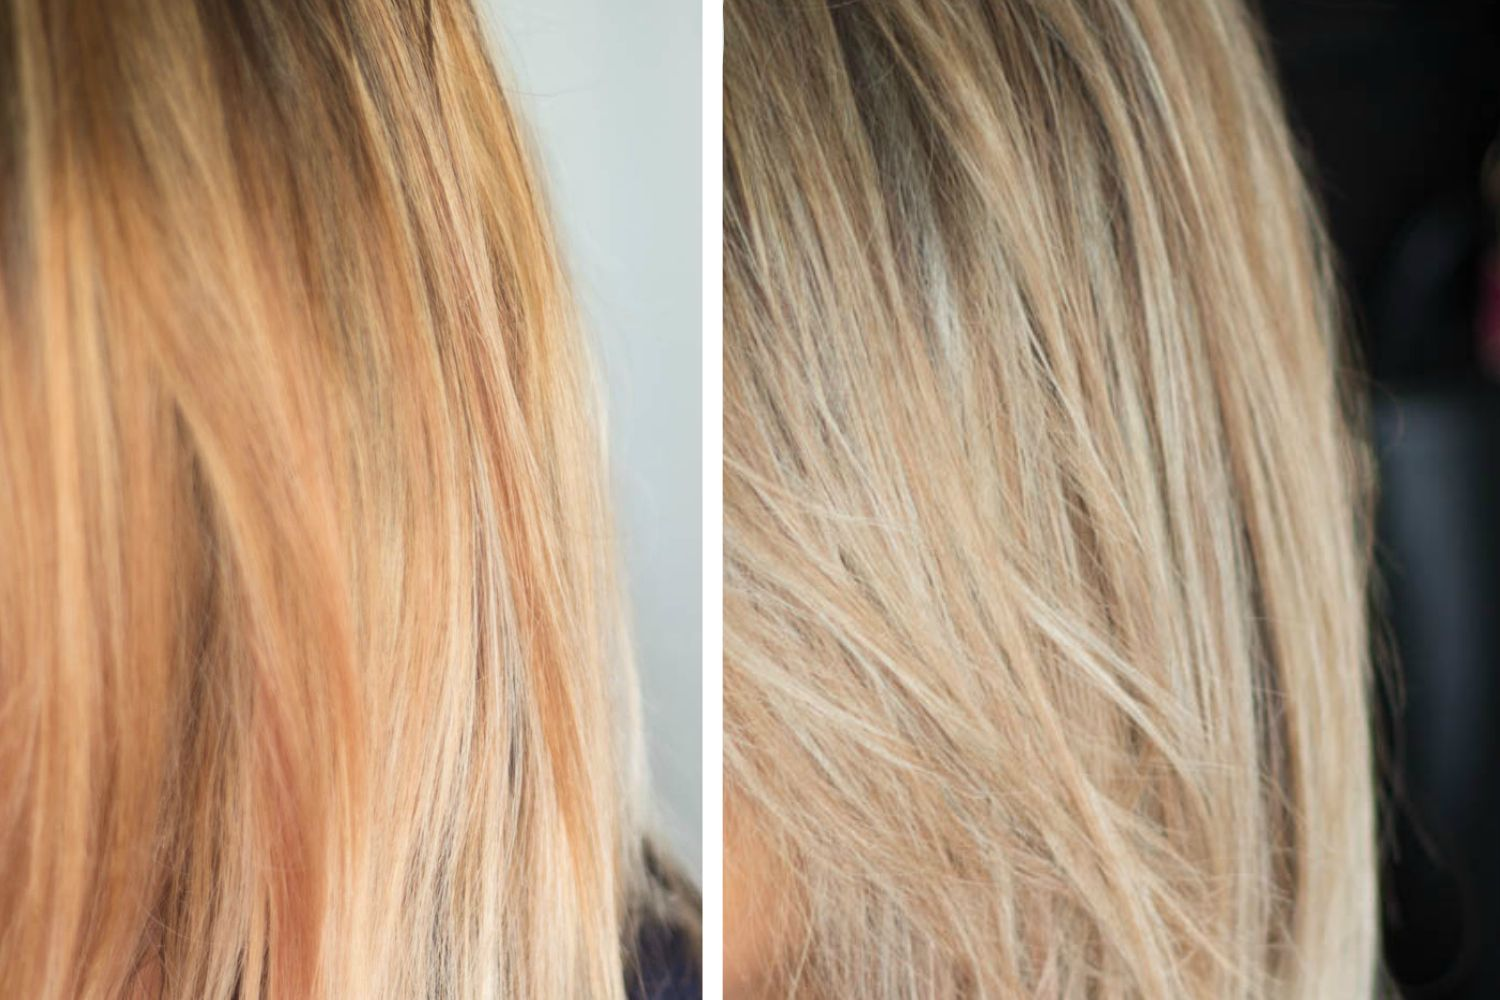 How To Tone Brassy Hair At Home Wella T14 And Wella T18 Toner For Blonde Hair Toning Bleached Hair Toning Blonde Hair